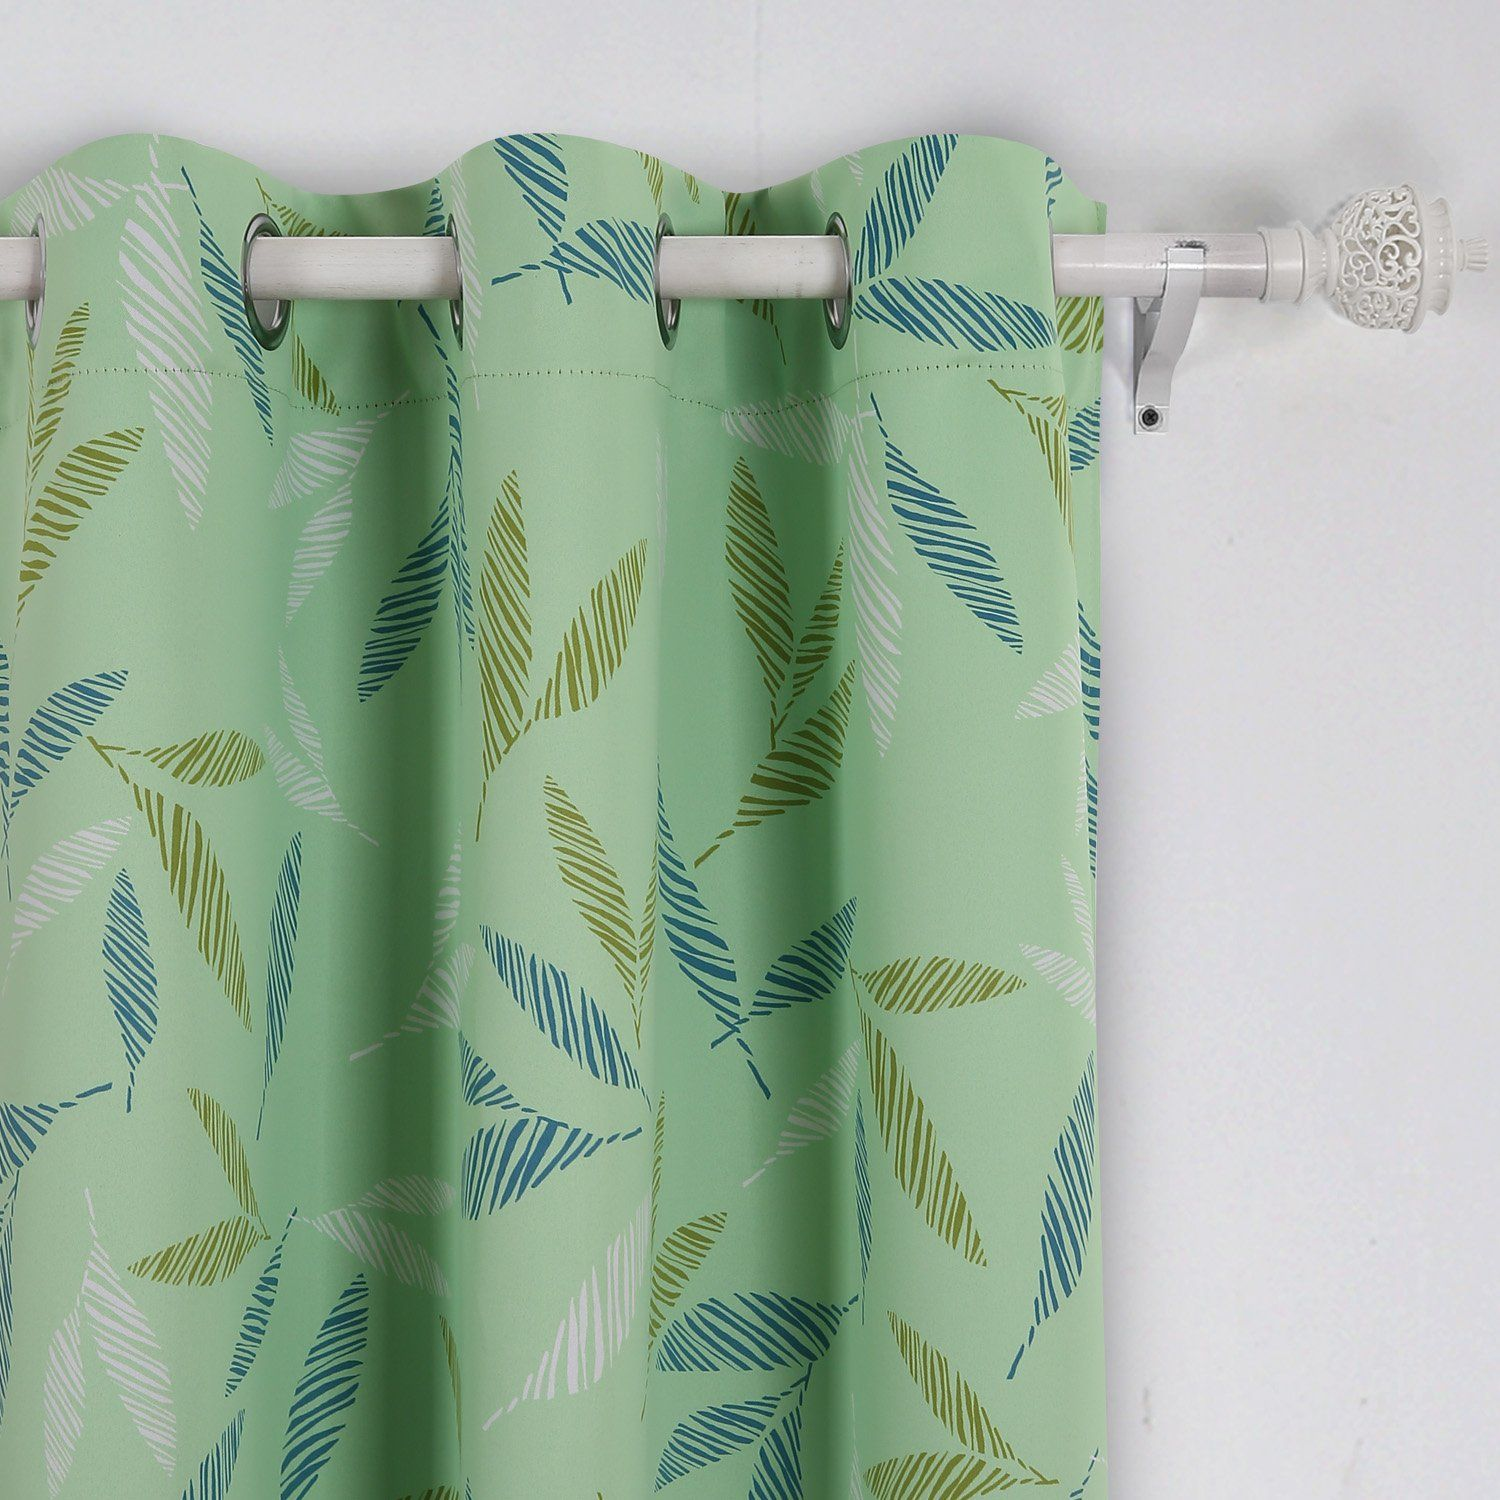 Deconovo home fashion decorative curtains with grommet top leaf